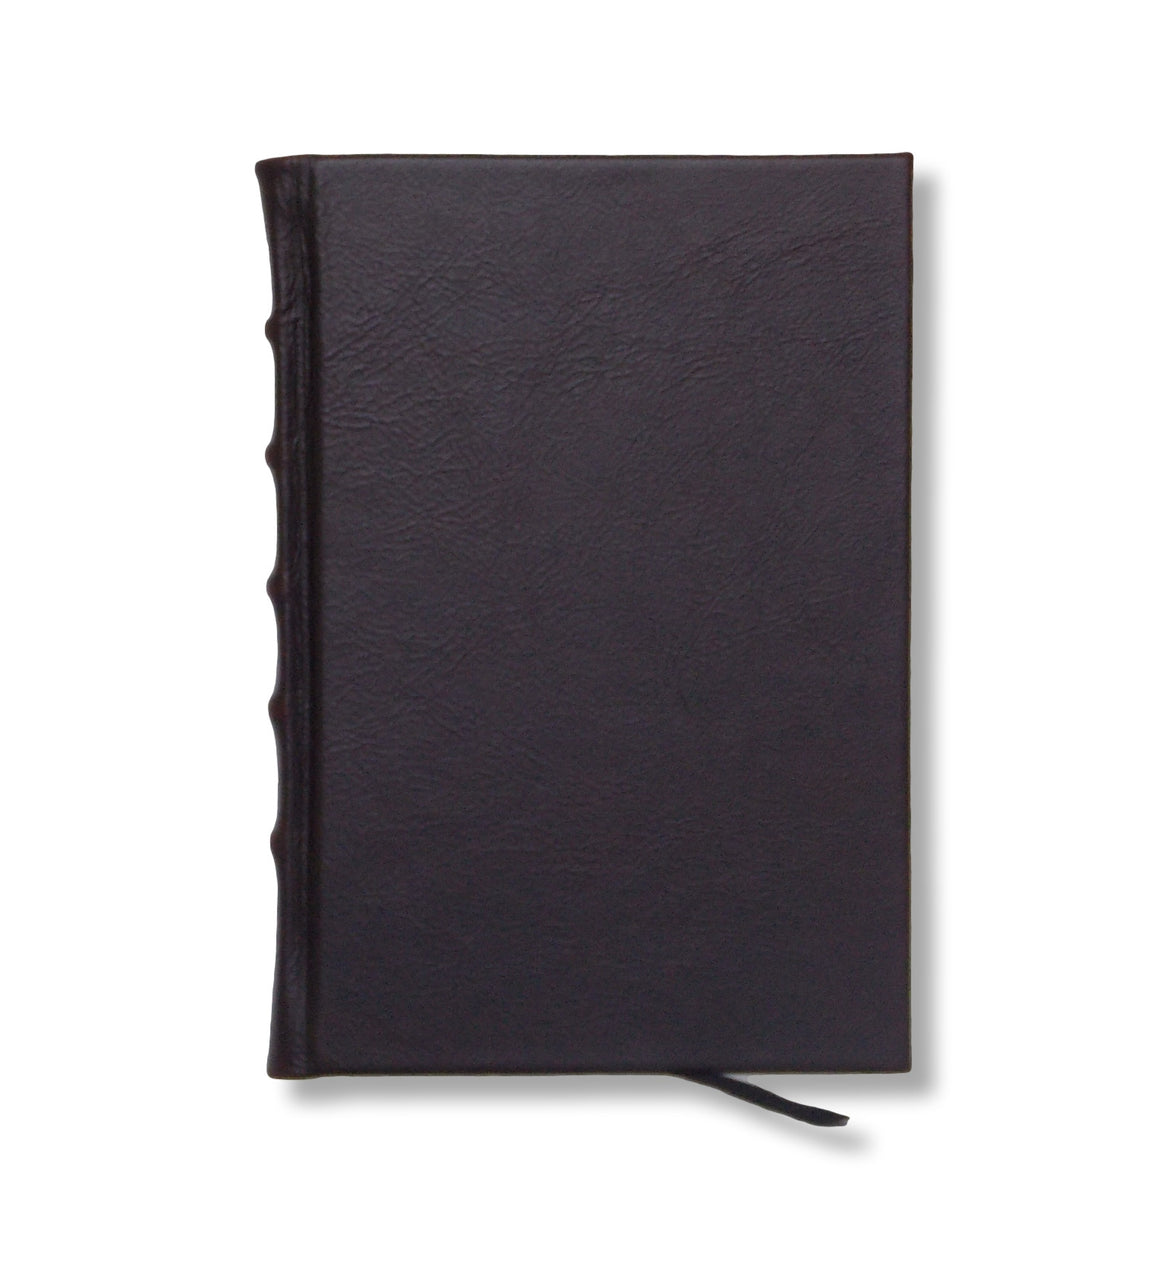 Full Leather Journal in Chocolate Brown